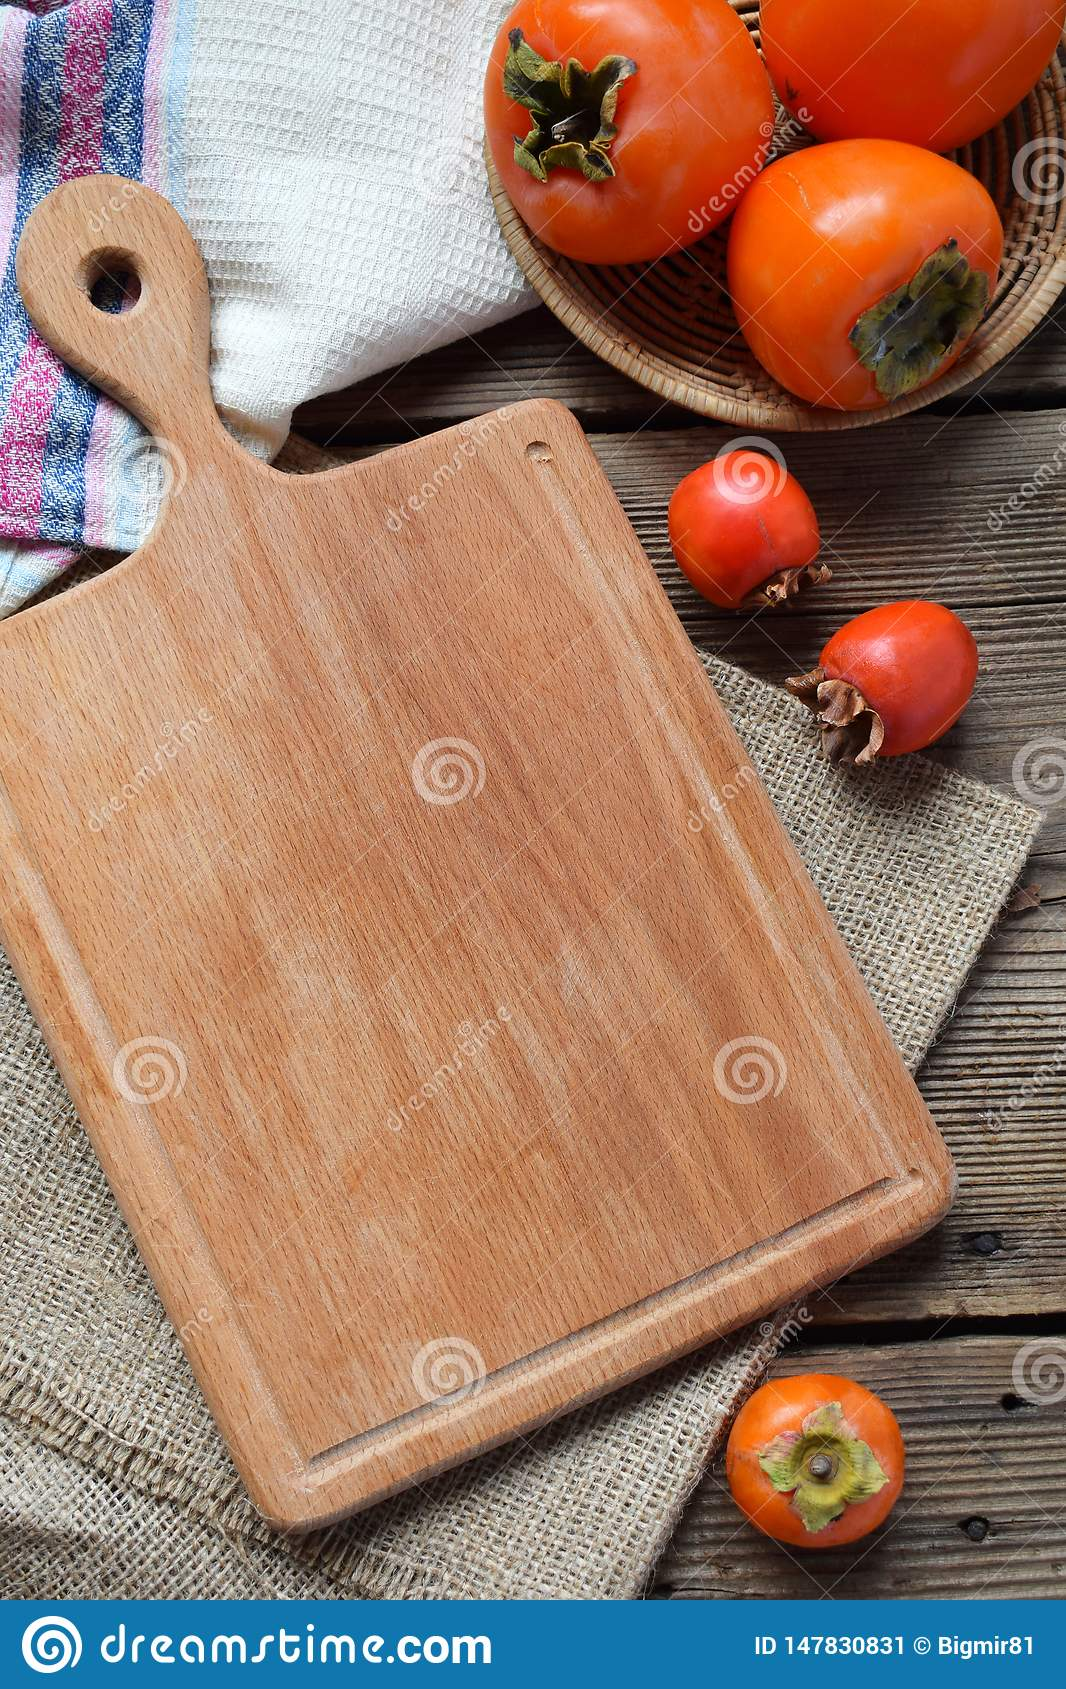 Rustic composition with different varieties of persimmons and wooden cutting board. Country style. Baking or cooking background.